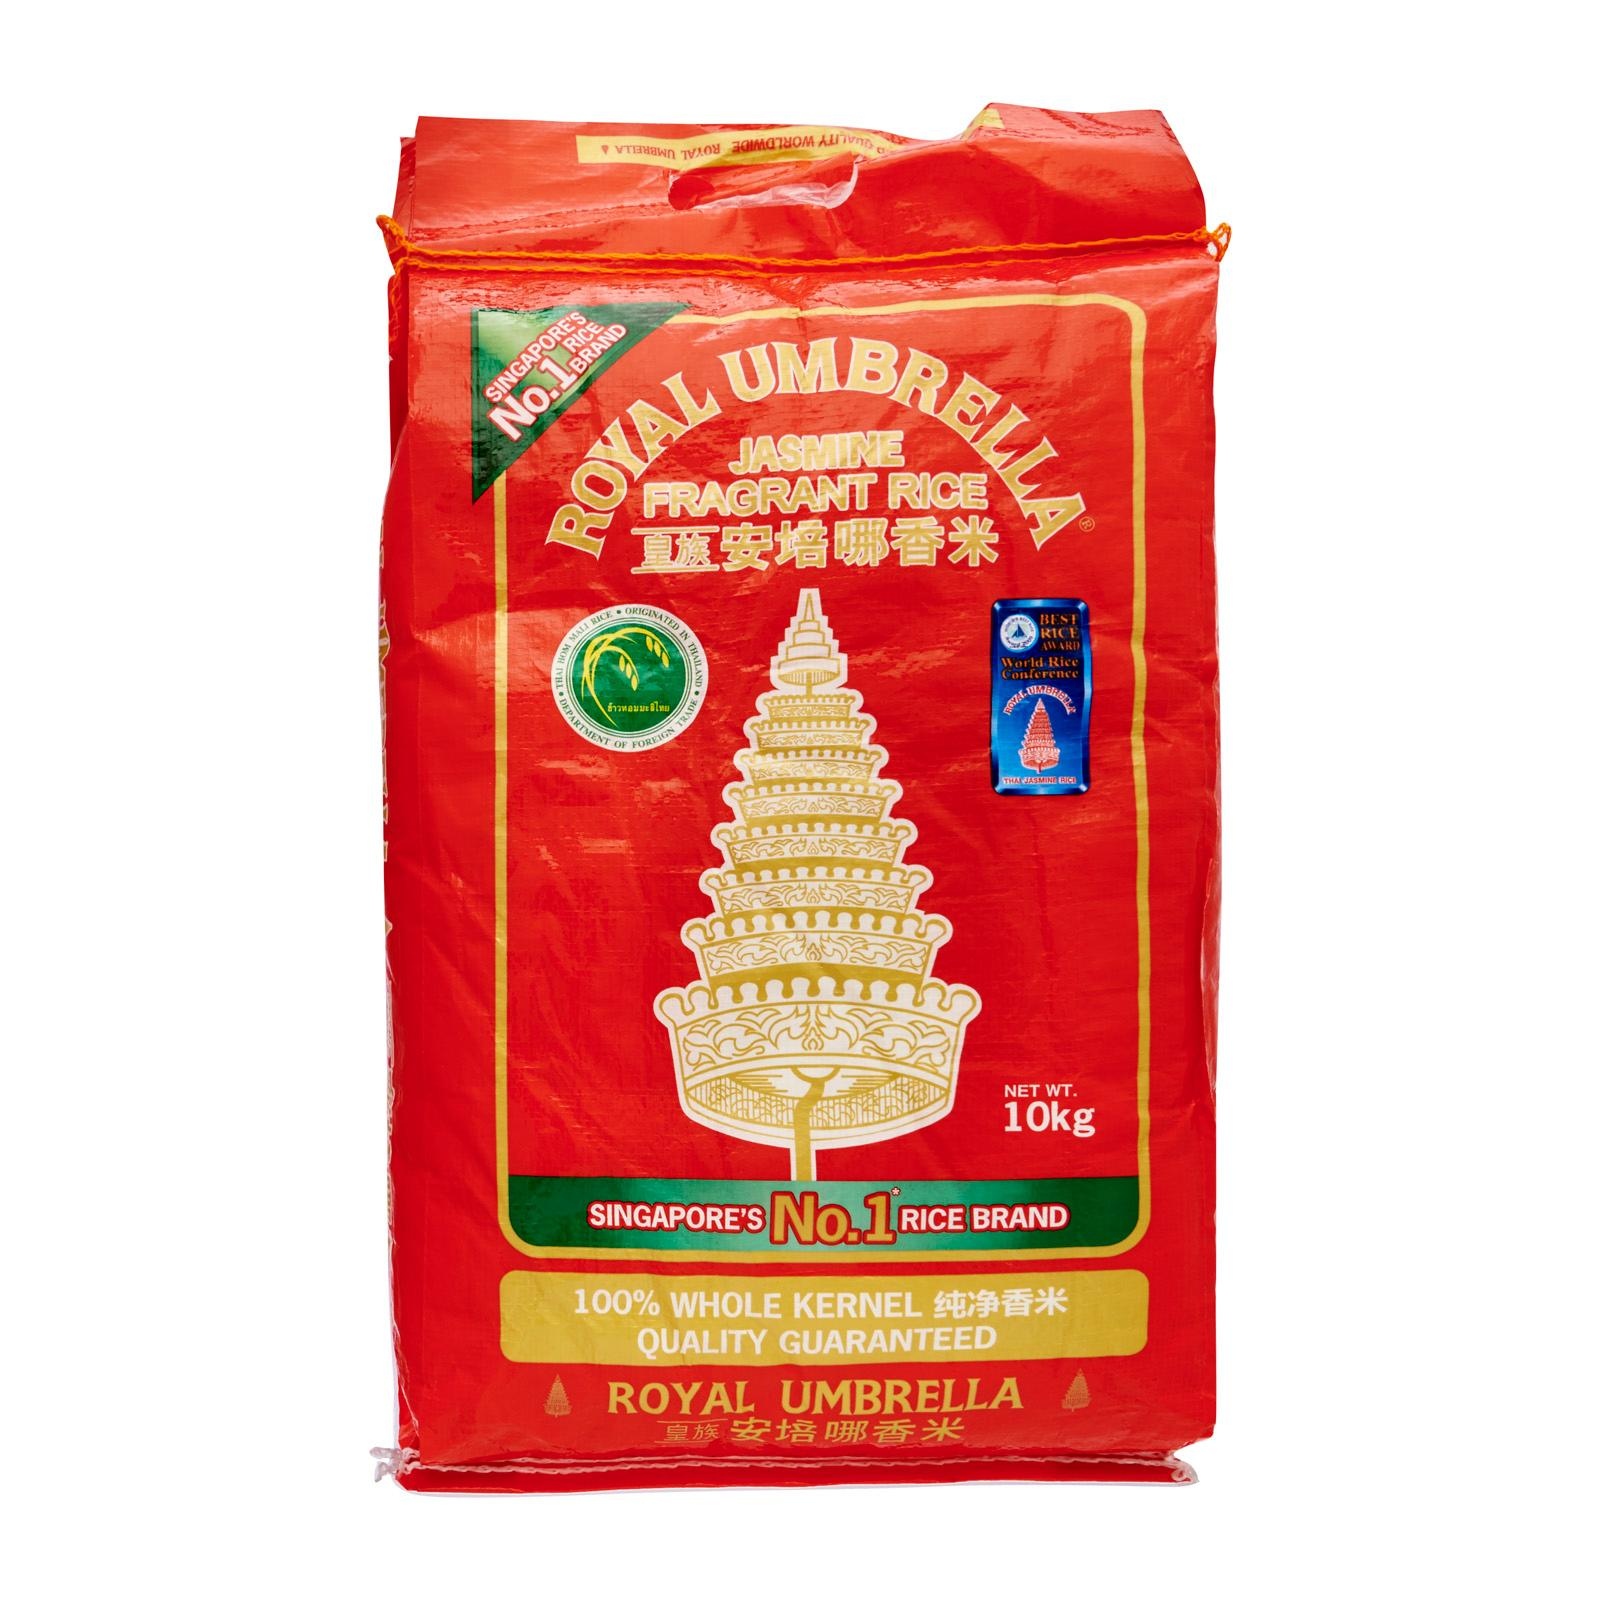 Royal Umbrella Fragrant Rice 10 kg